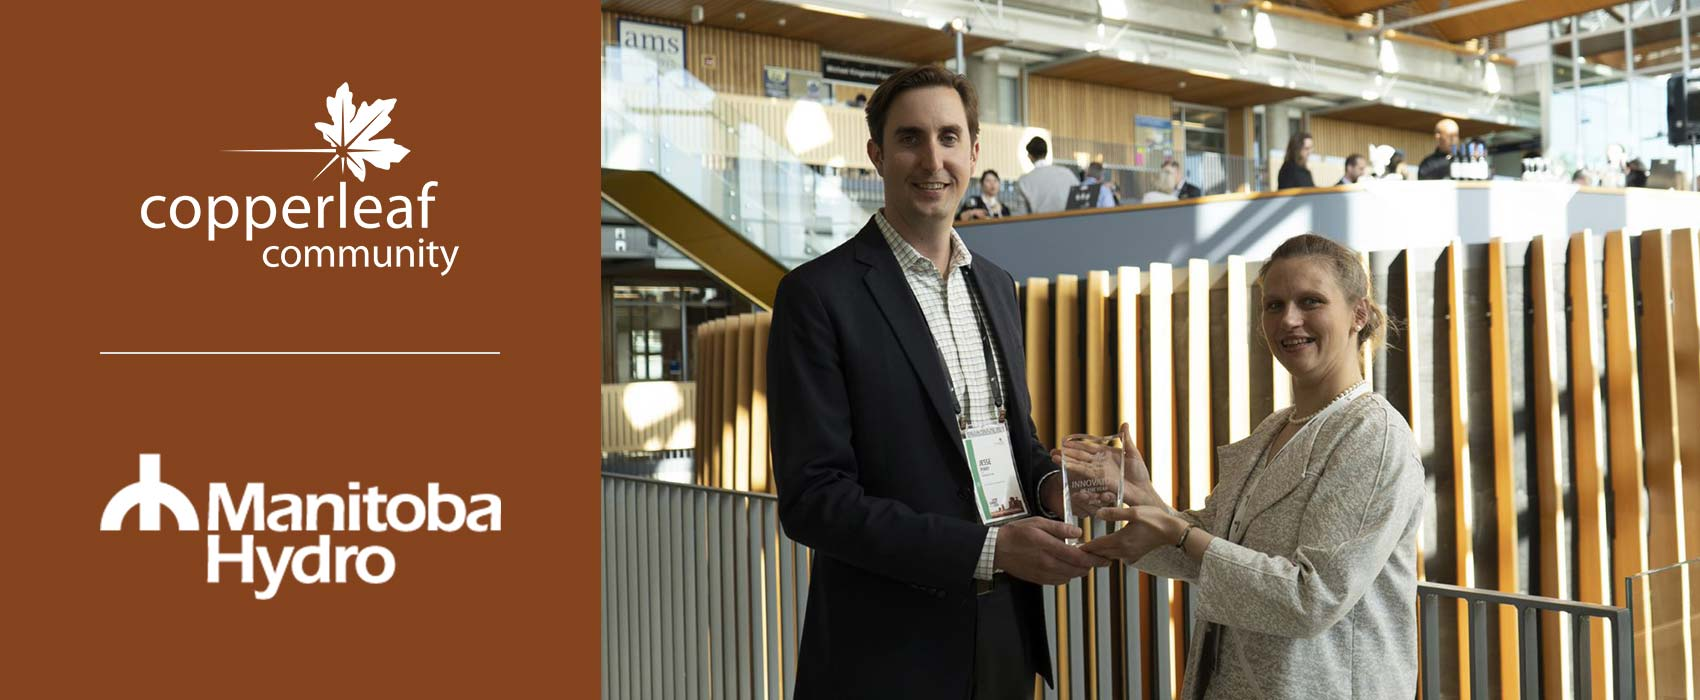 """Image for Manitoba Hydro Wins the 2019 Copperleaf Community """"Innovator of the Year"""" Award!"""